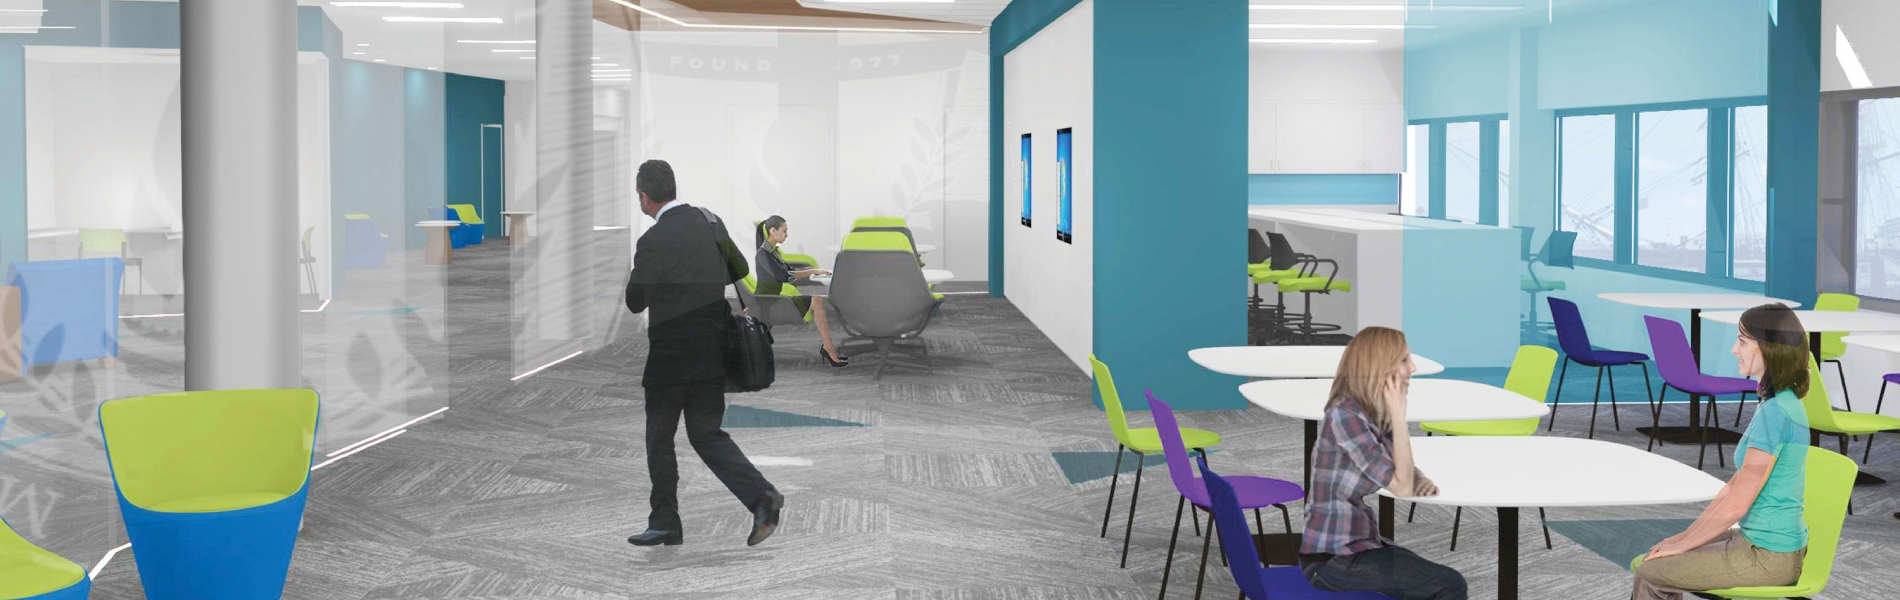 Collaborative space for students and faculty